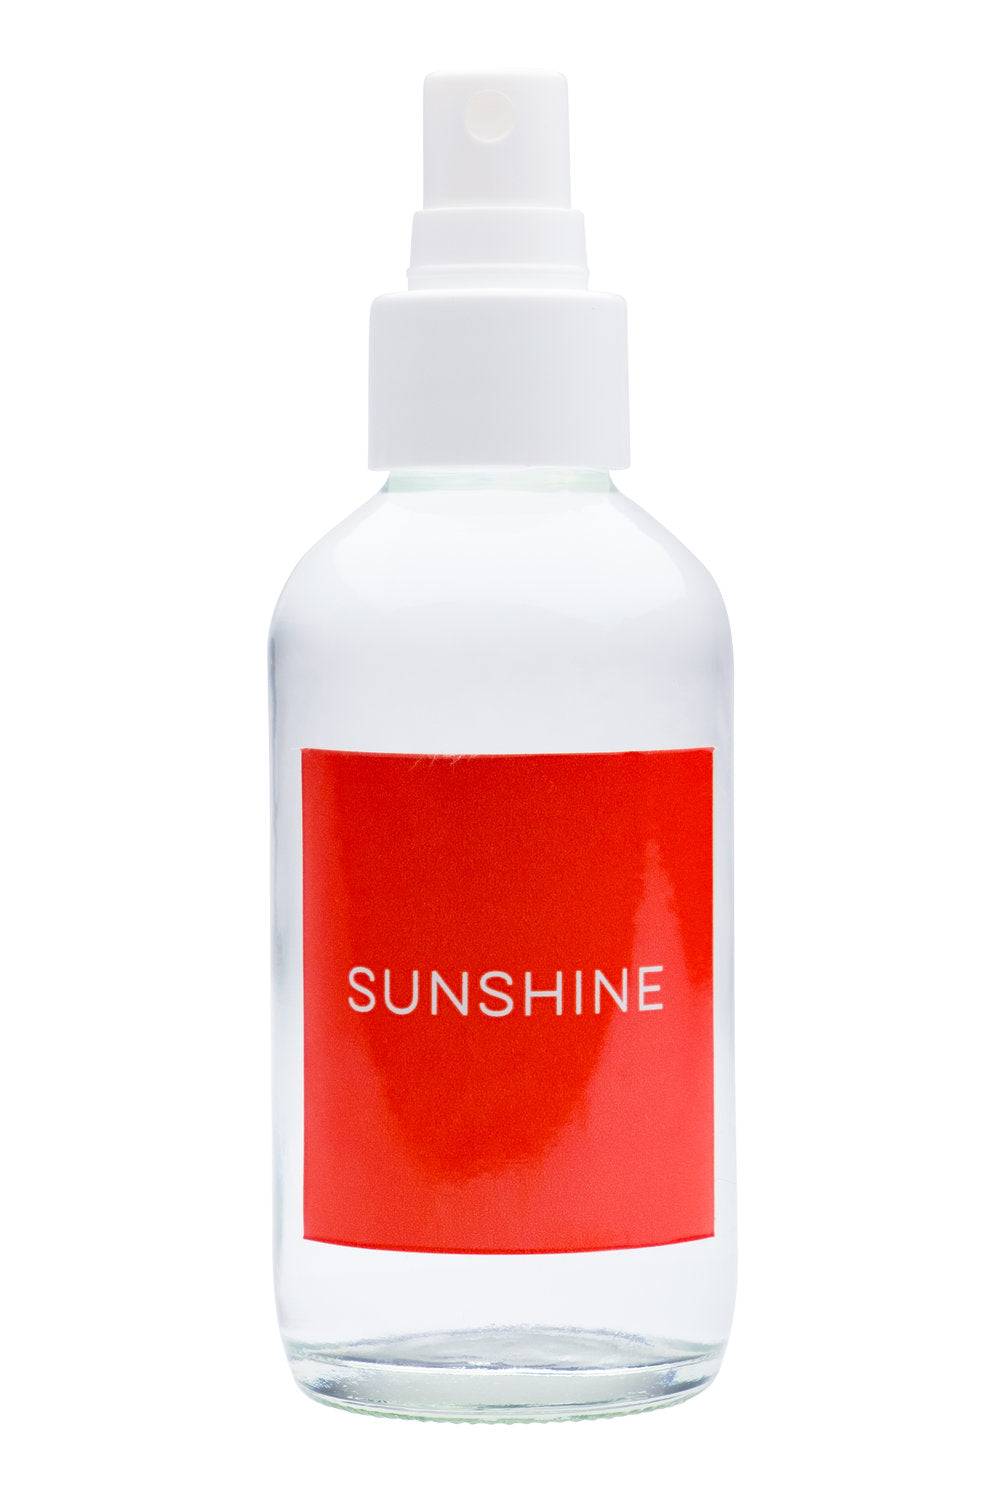 Sunshine - Room & Body Spray